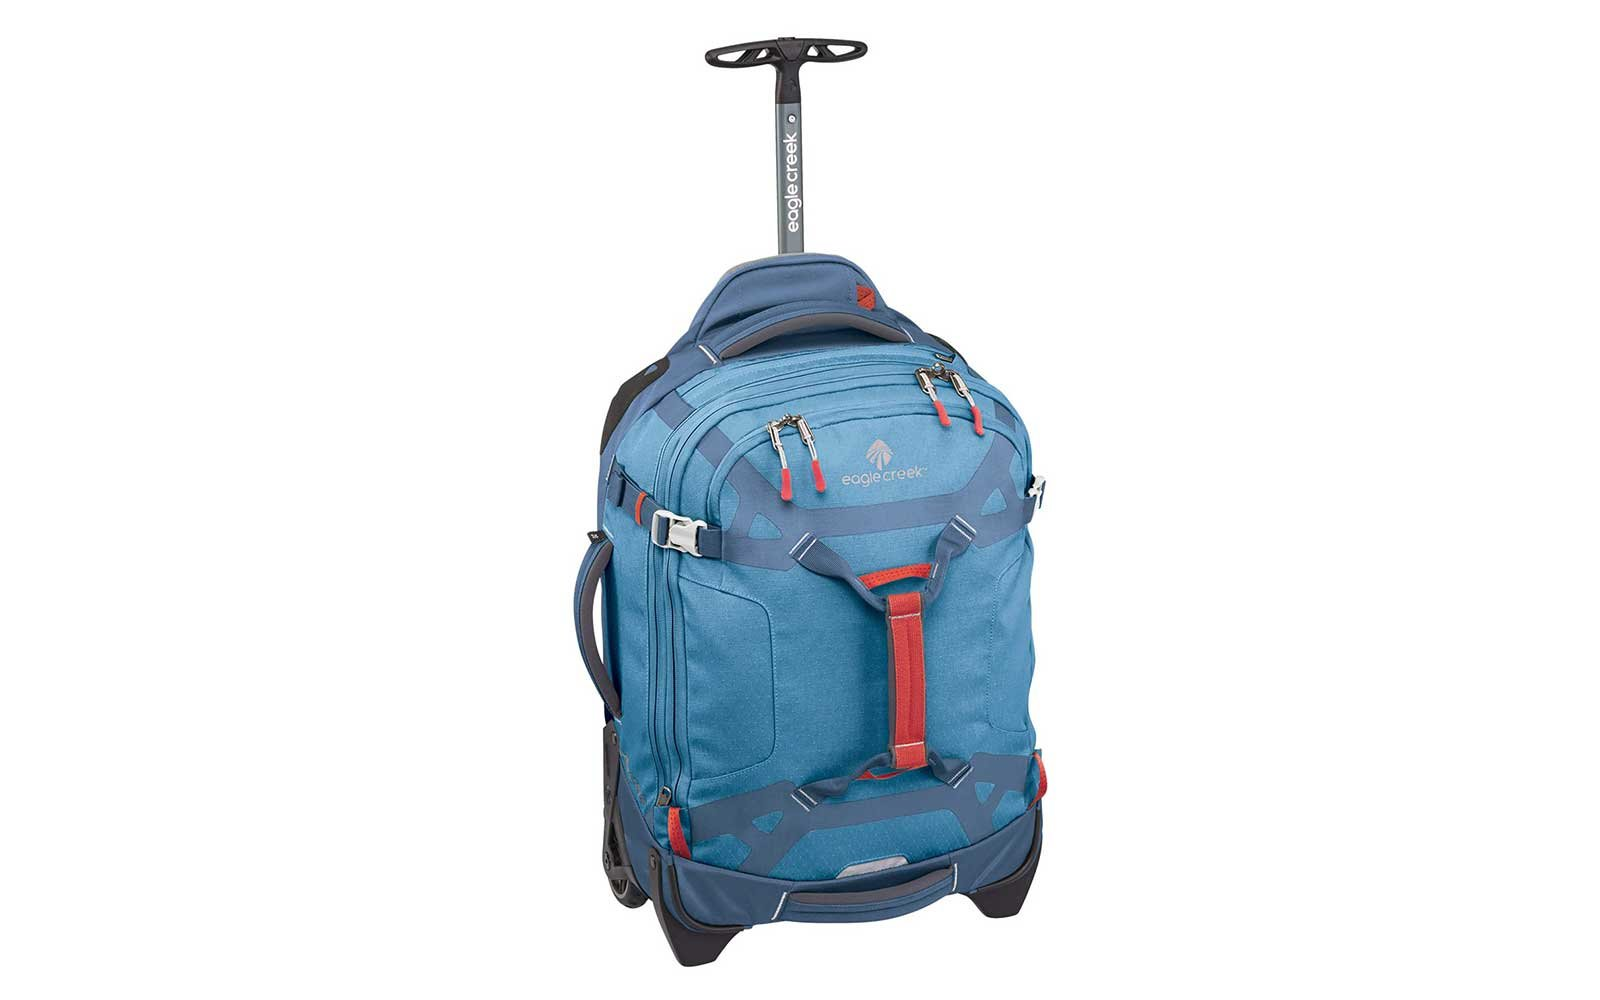 The Best Kids Luggage For Family Vacation Travel Leisure